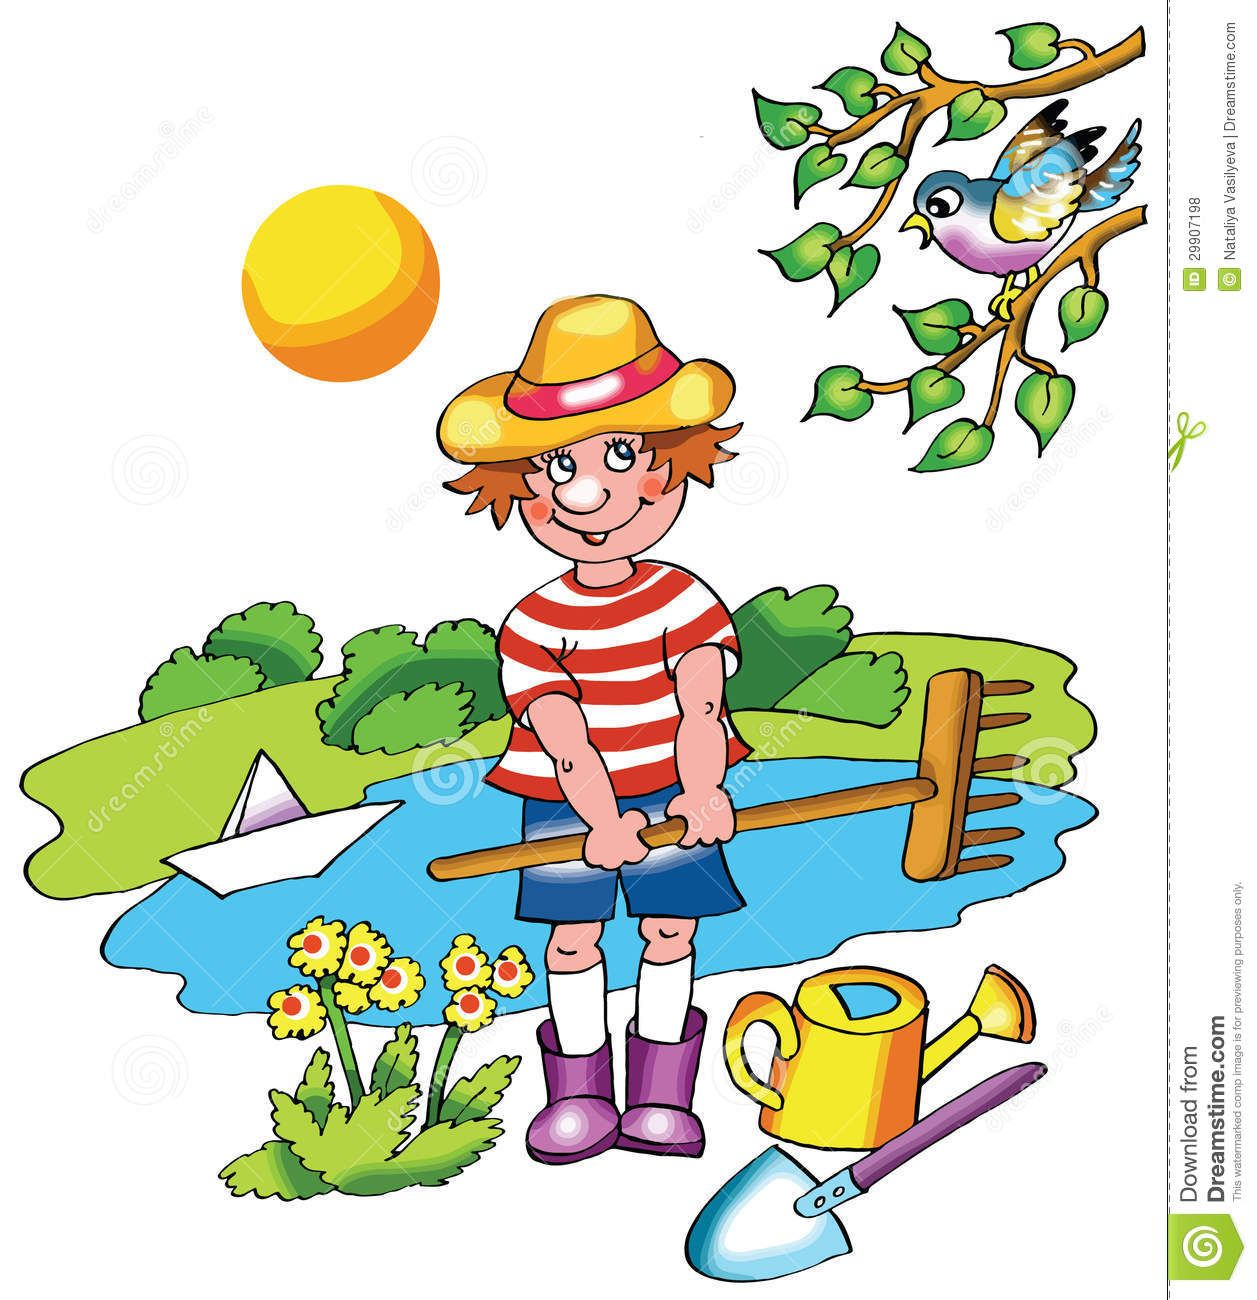 Sunny clipart hat, Sunny hat Transparent FREE for download.